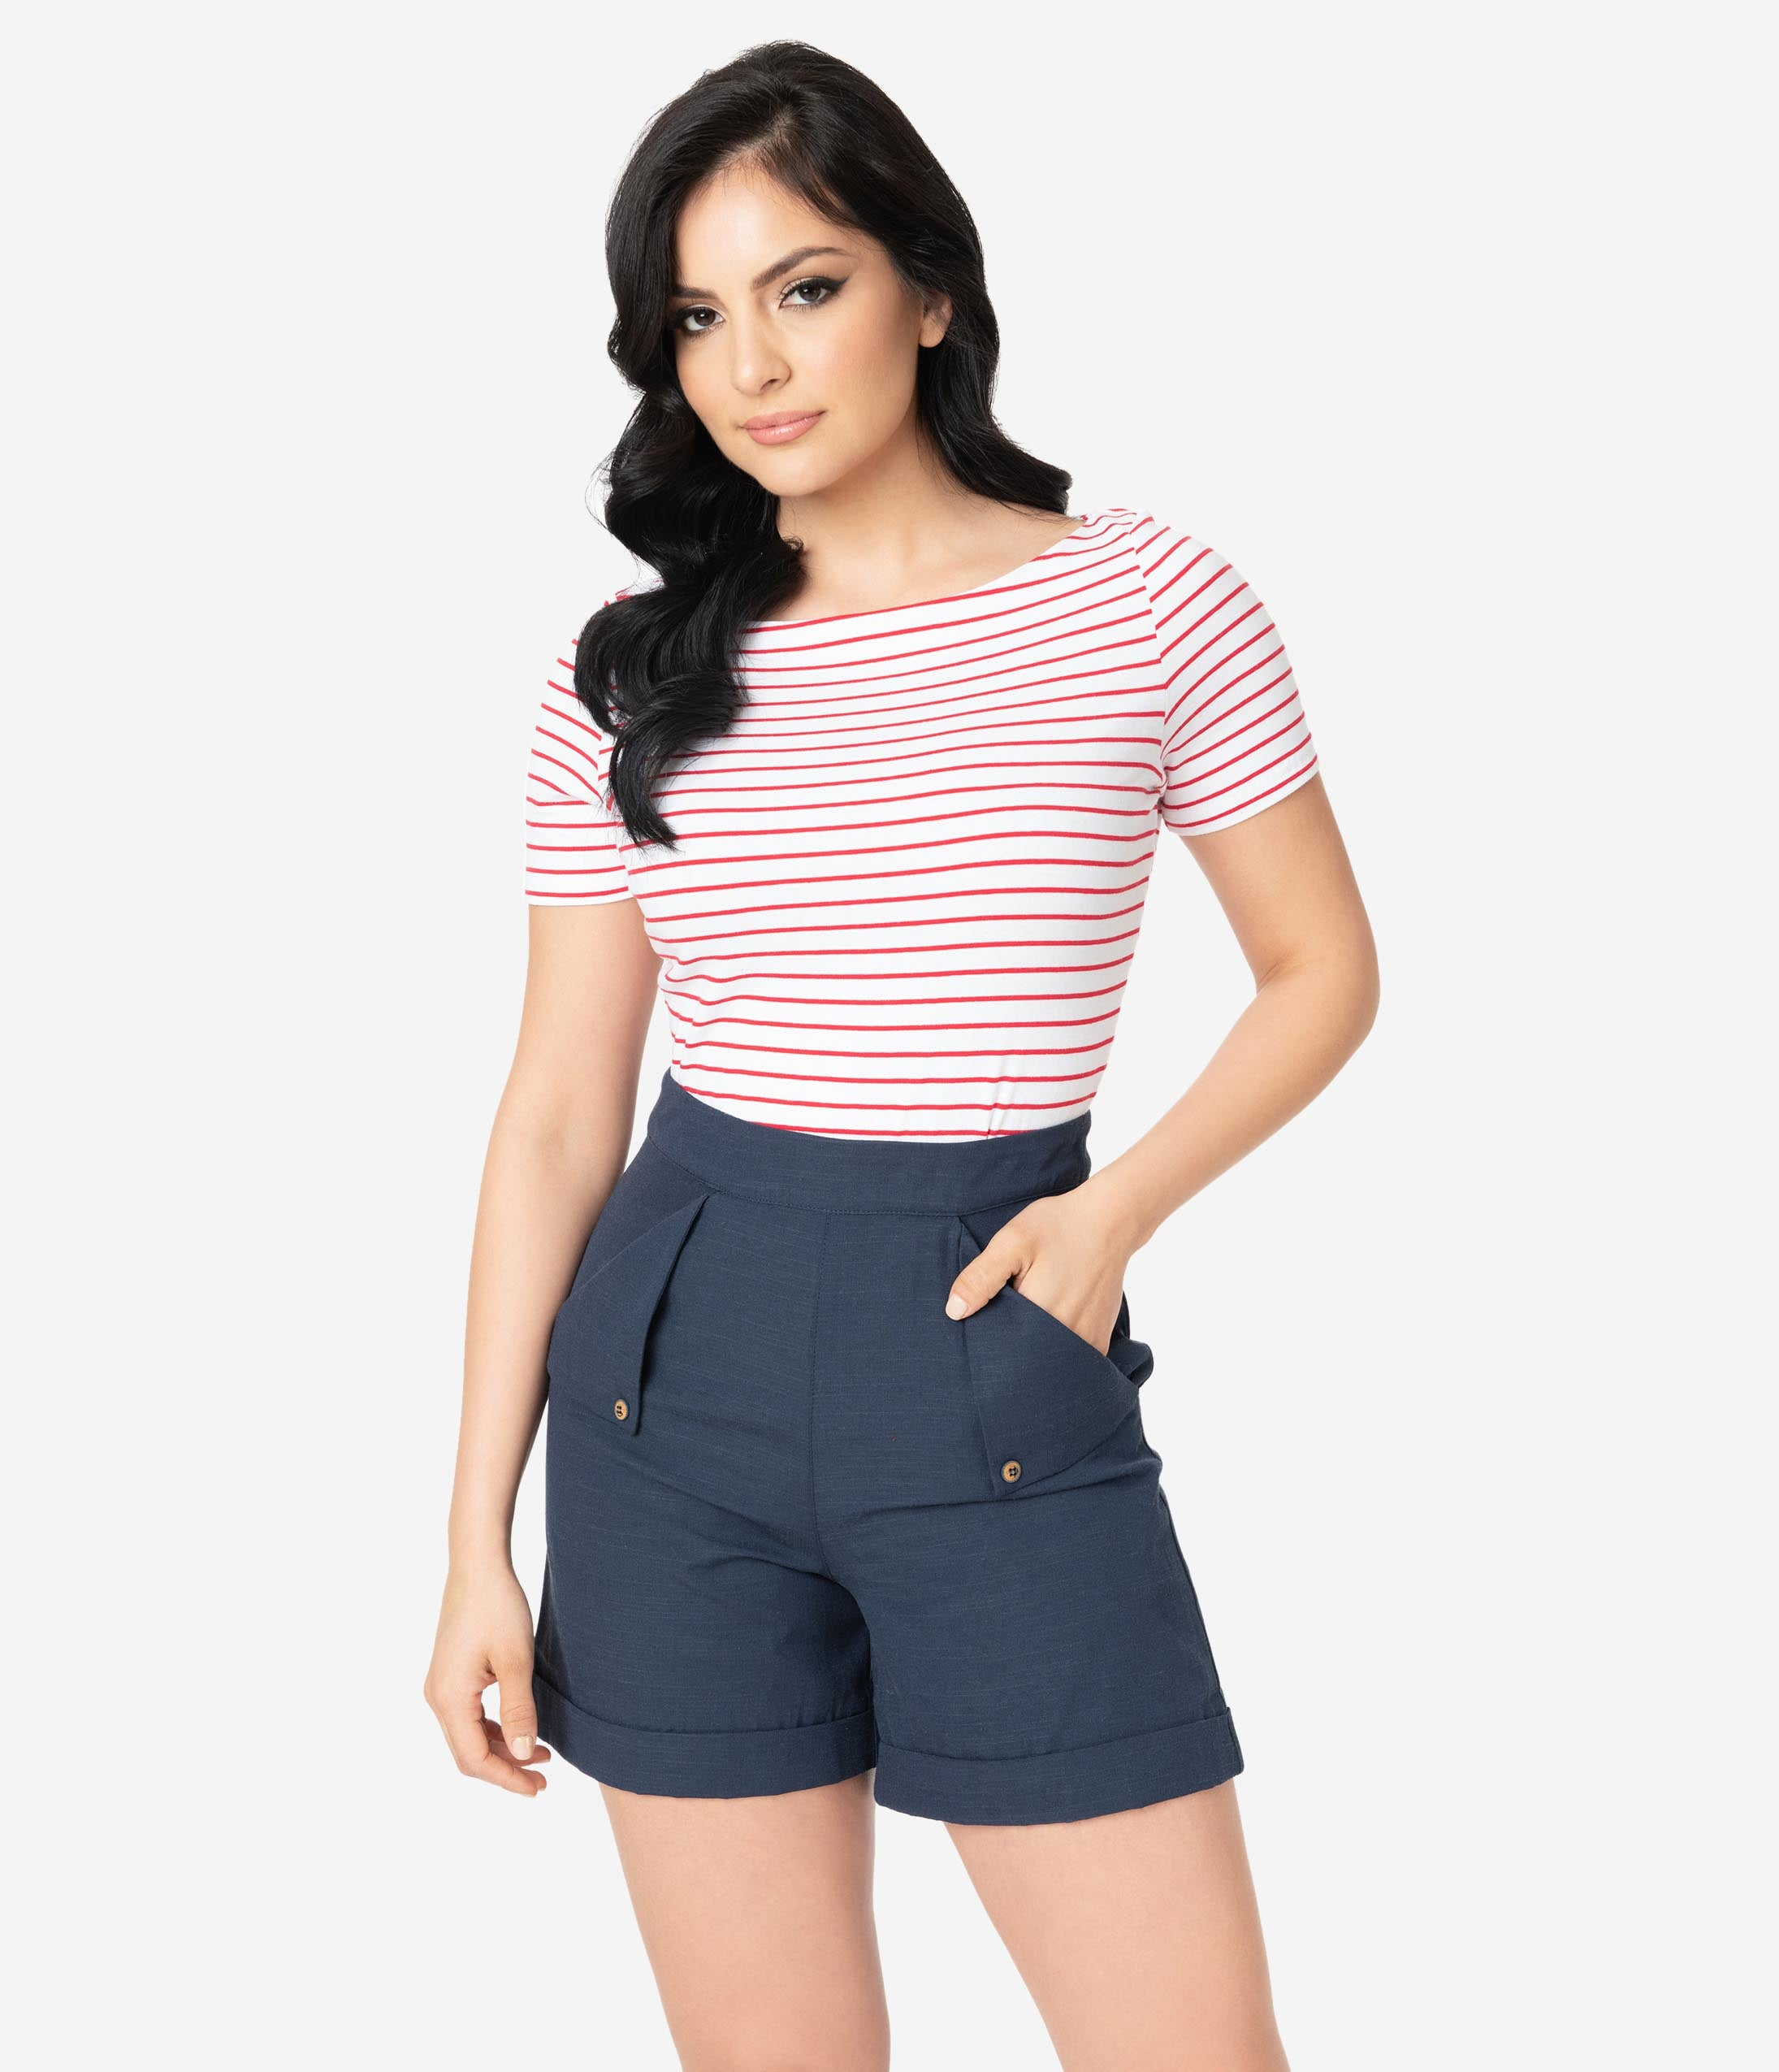 Vintage High Waisted Shorts, Sailor Shorts, Retro Shorts Navy High Waist Nautical Shorts $42.00 AT vintagedancer.com